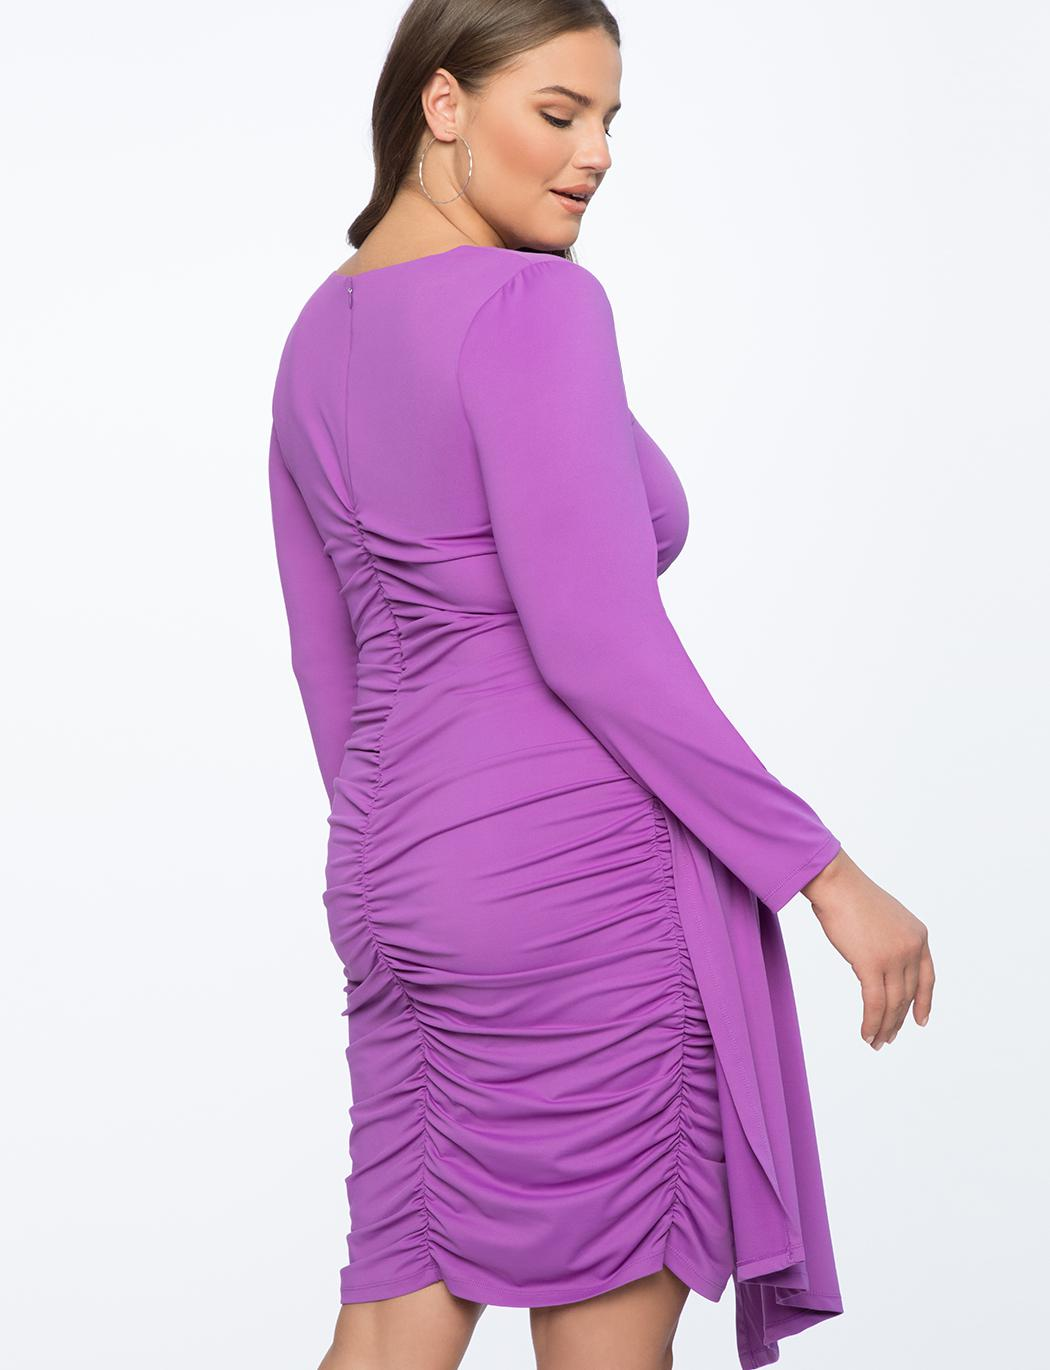 f515531d515 ... Ruched Dress With Skirt Overlay - Lyst. View fullscreen